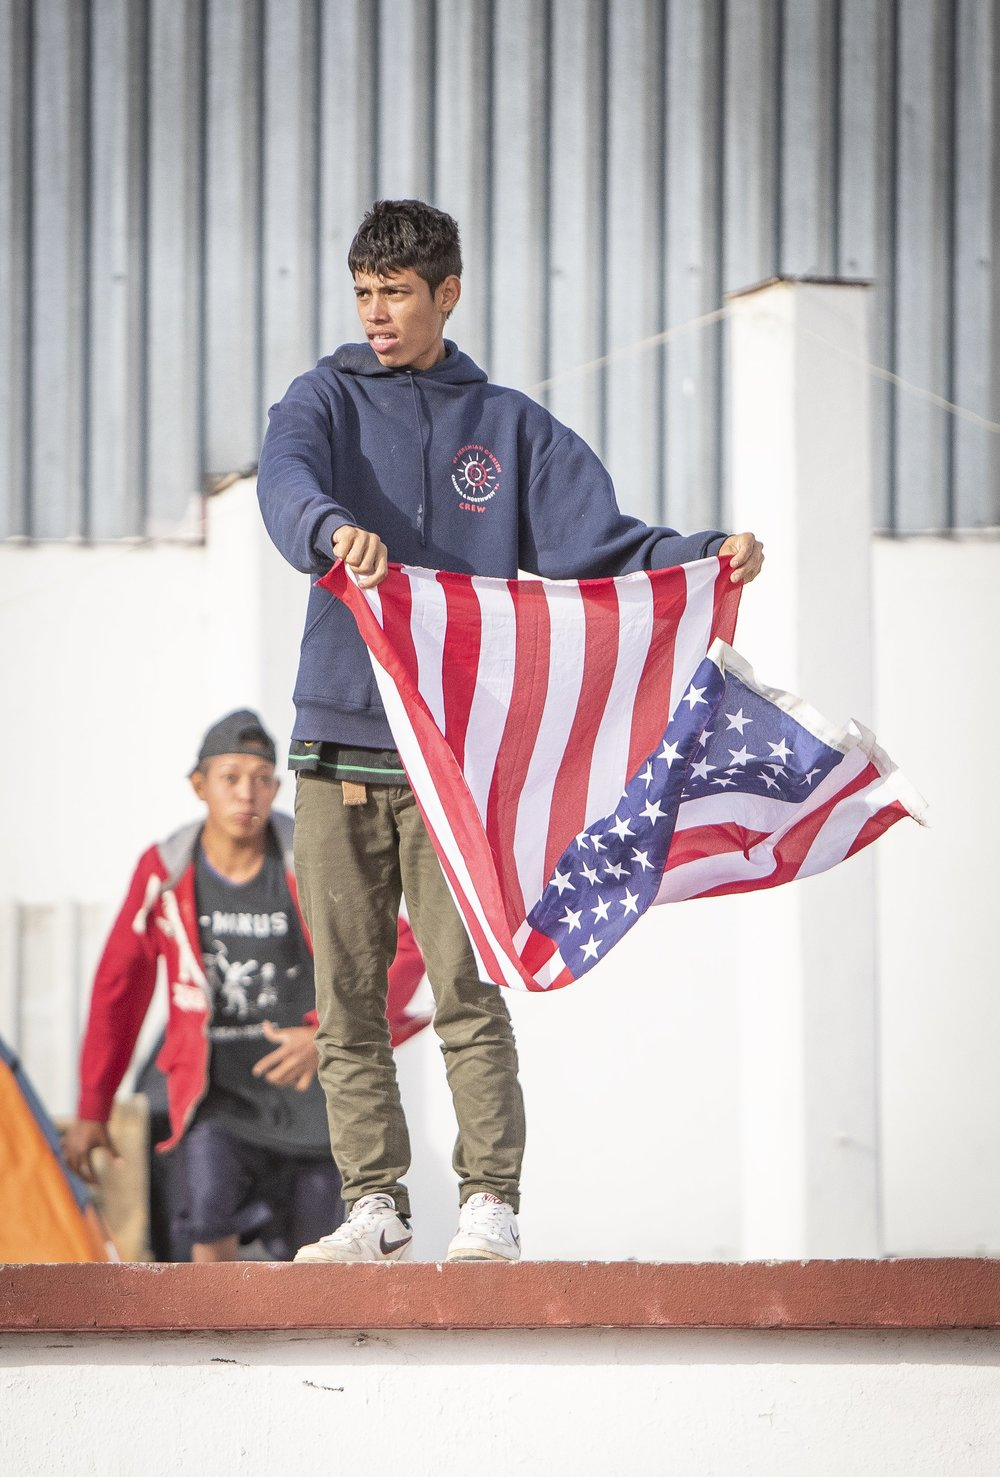 A young male, part of the migrant caravan, holds up an American Flag, while other members of the caravan arrive at the El Barretal nightclub, turned into a temporary shelter in Tijuana, Mexico, Saturday, Dec. 1, 2018. Photo By: Daniel Bowyer / Corsair Contributor